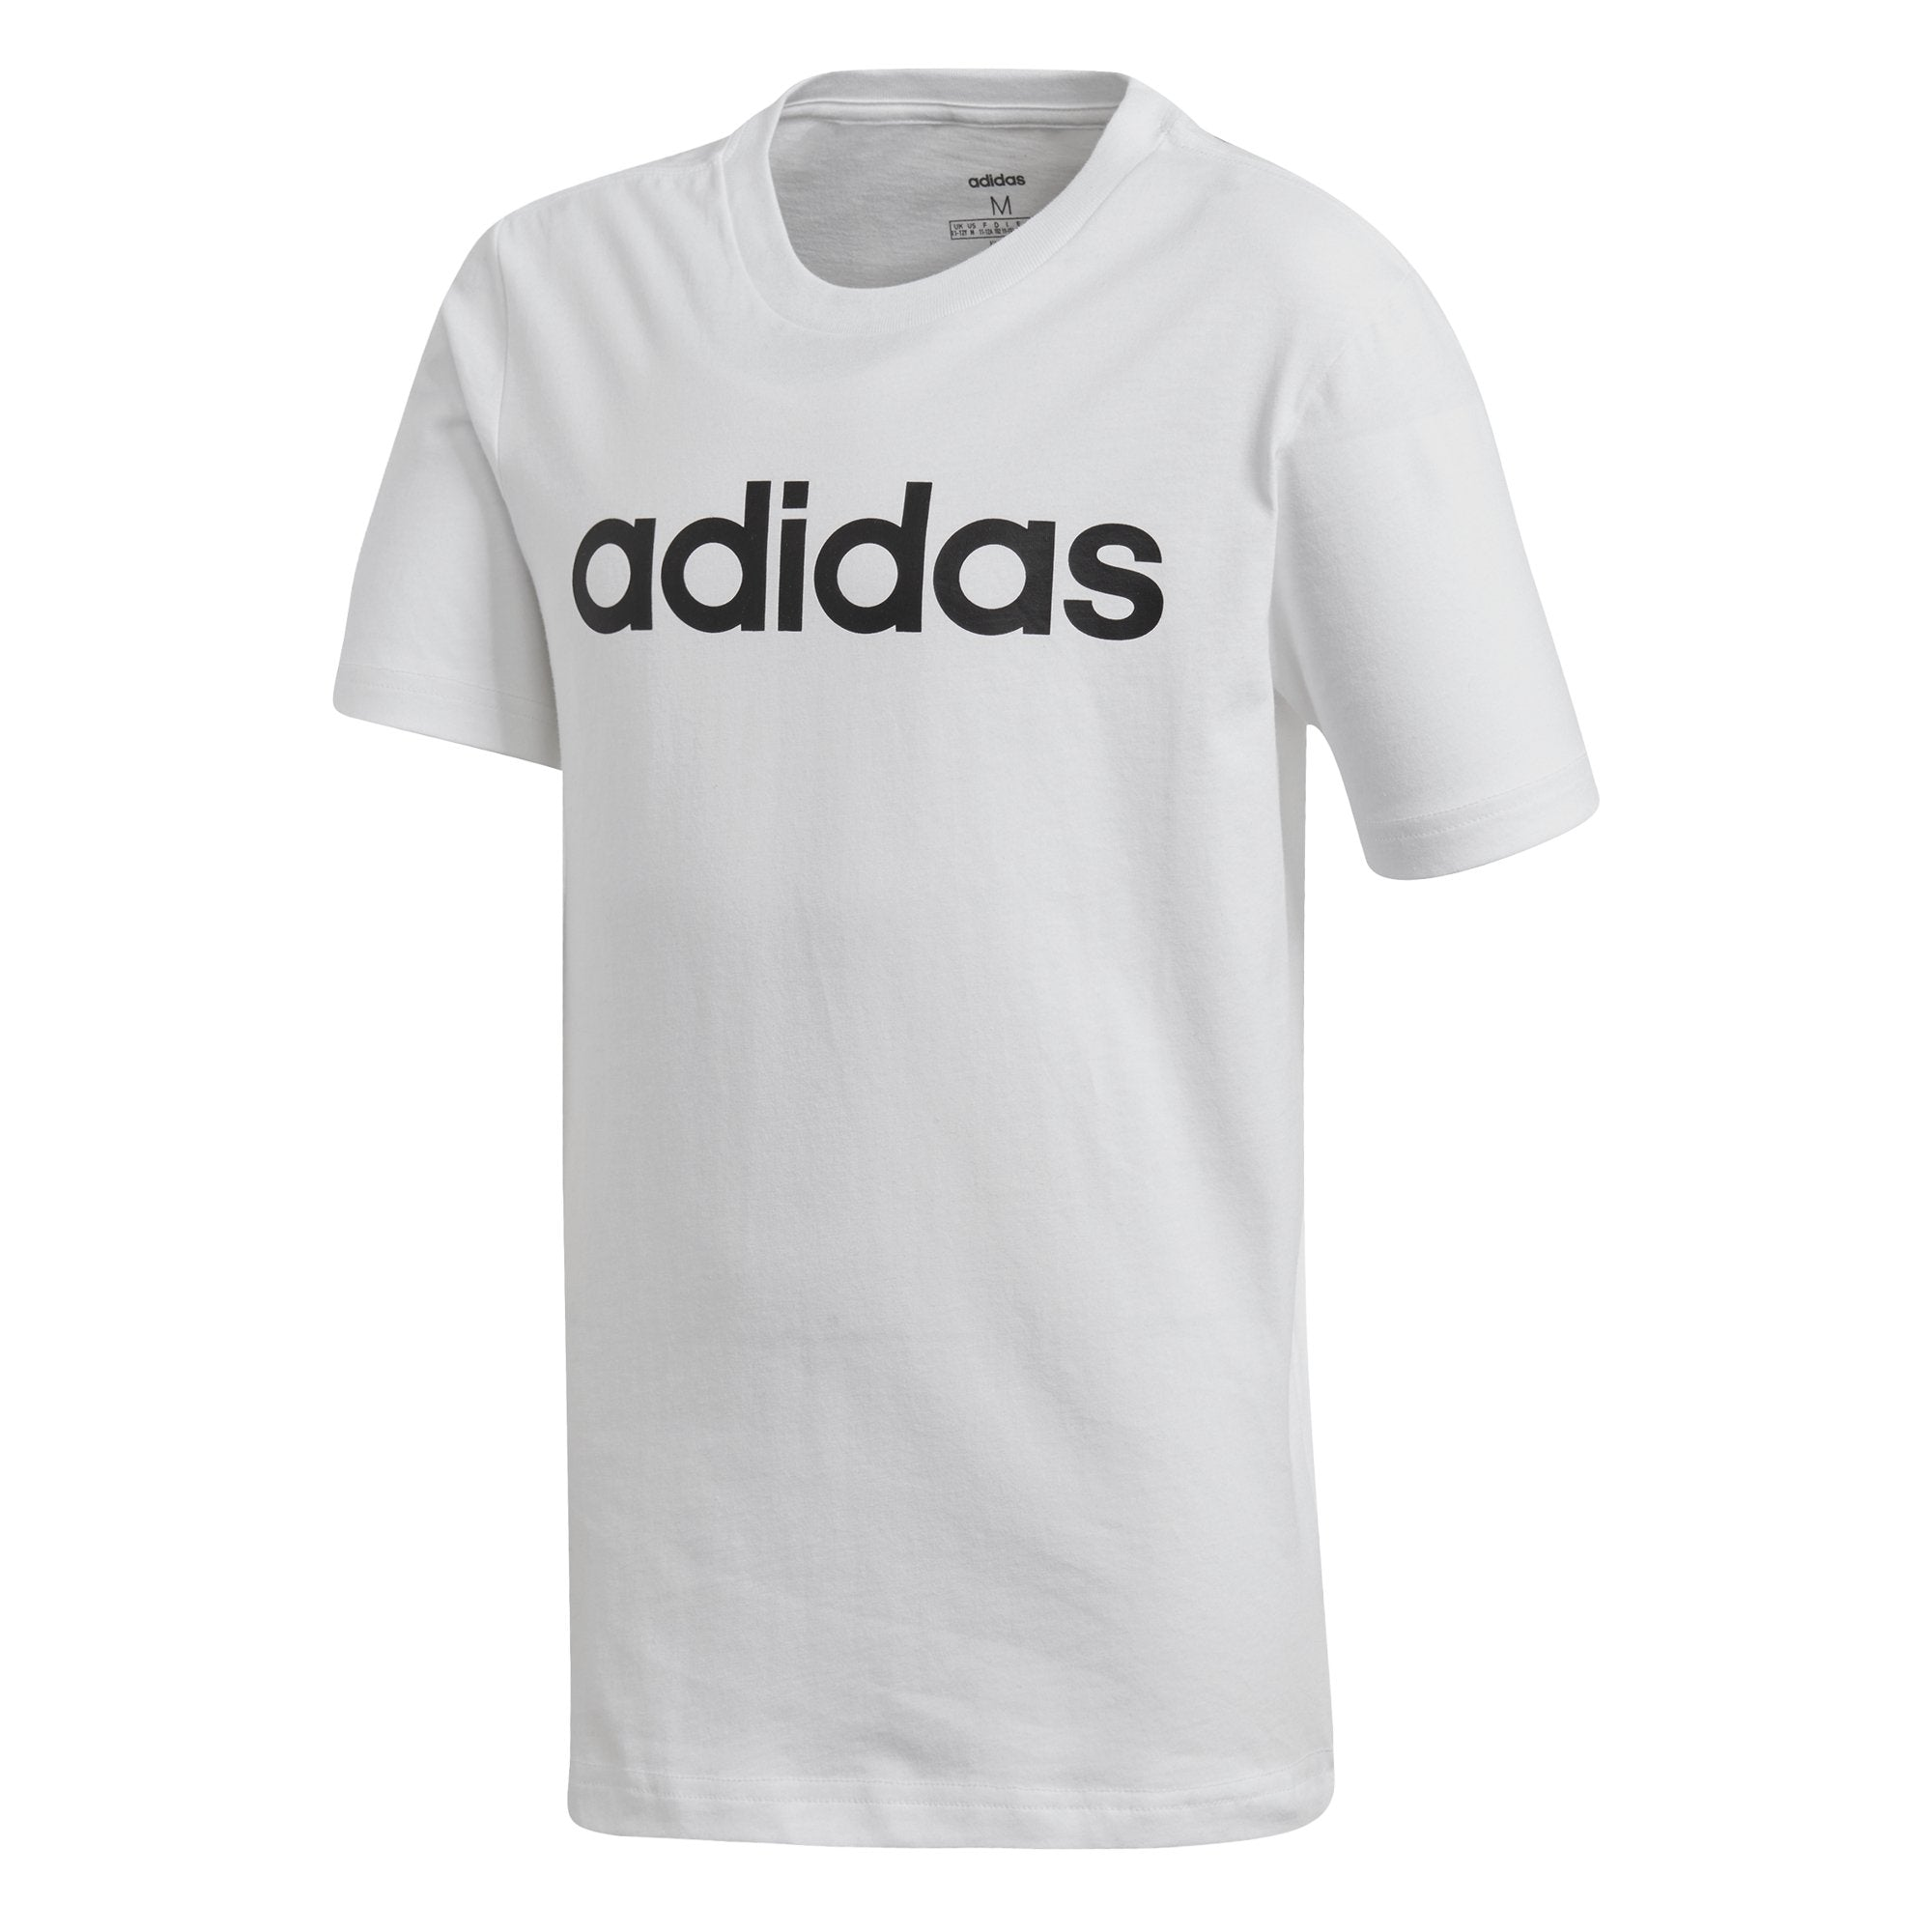 Adidas Boys Essentials Linear Logo Tee - white-black Boys Apparel Adidas